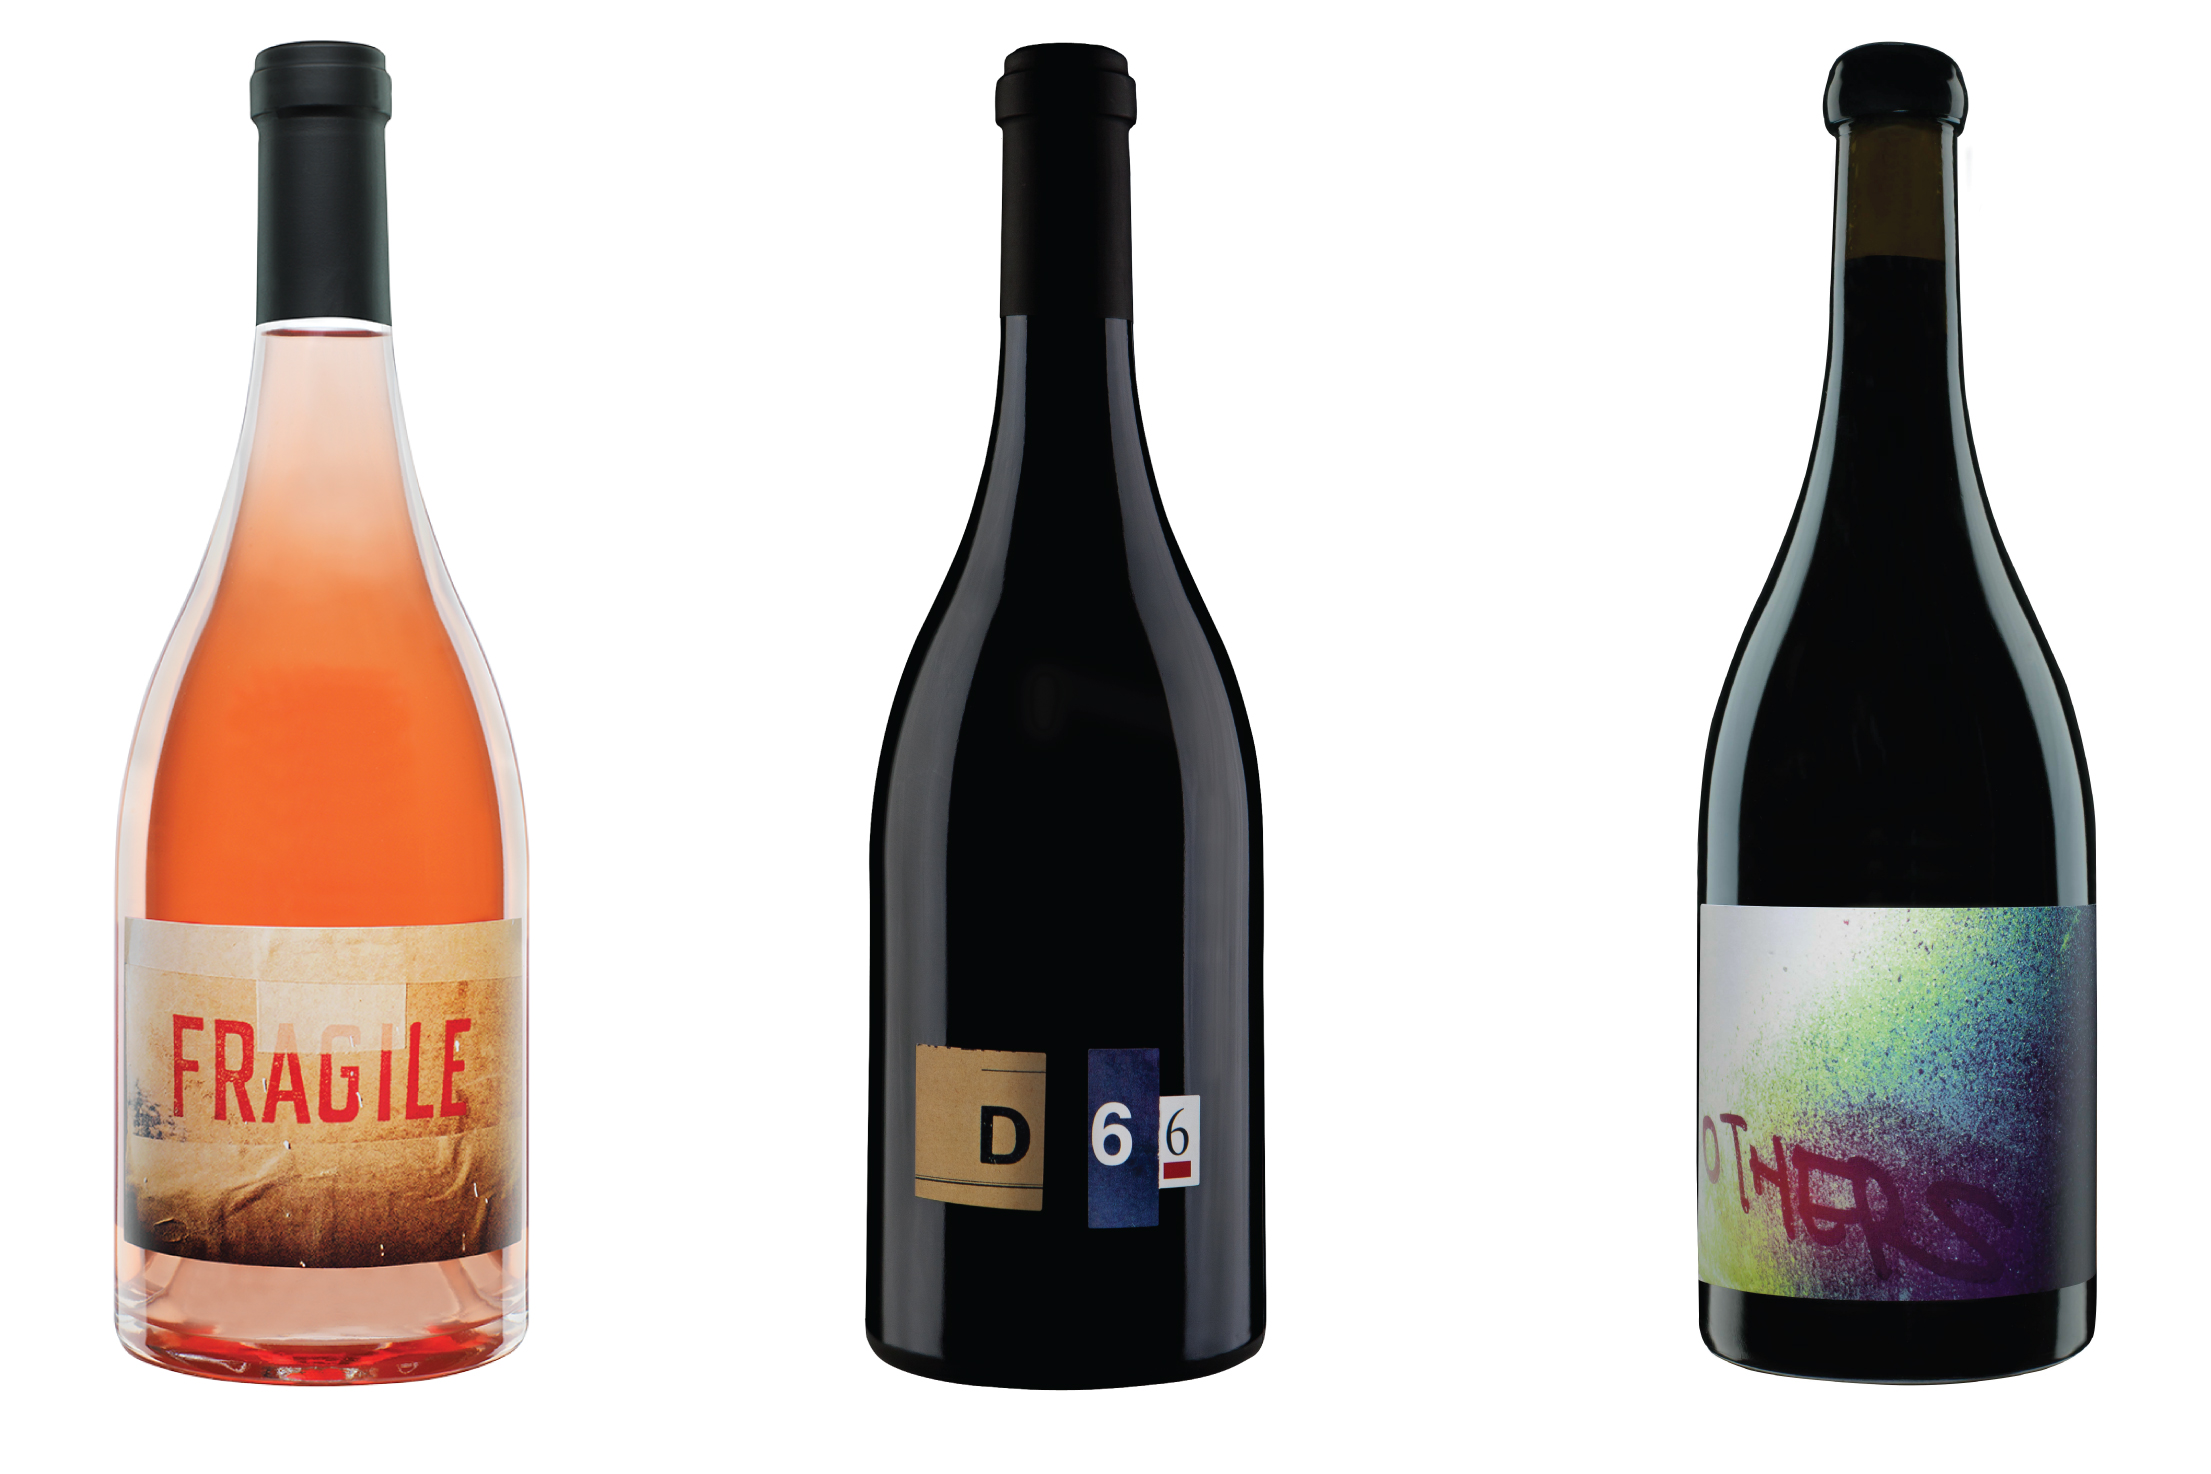 Department 66 wines